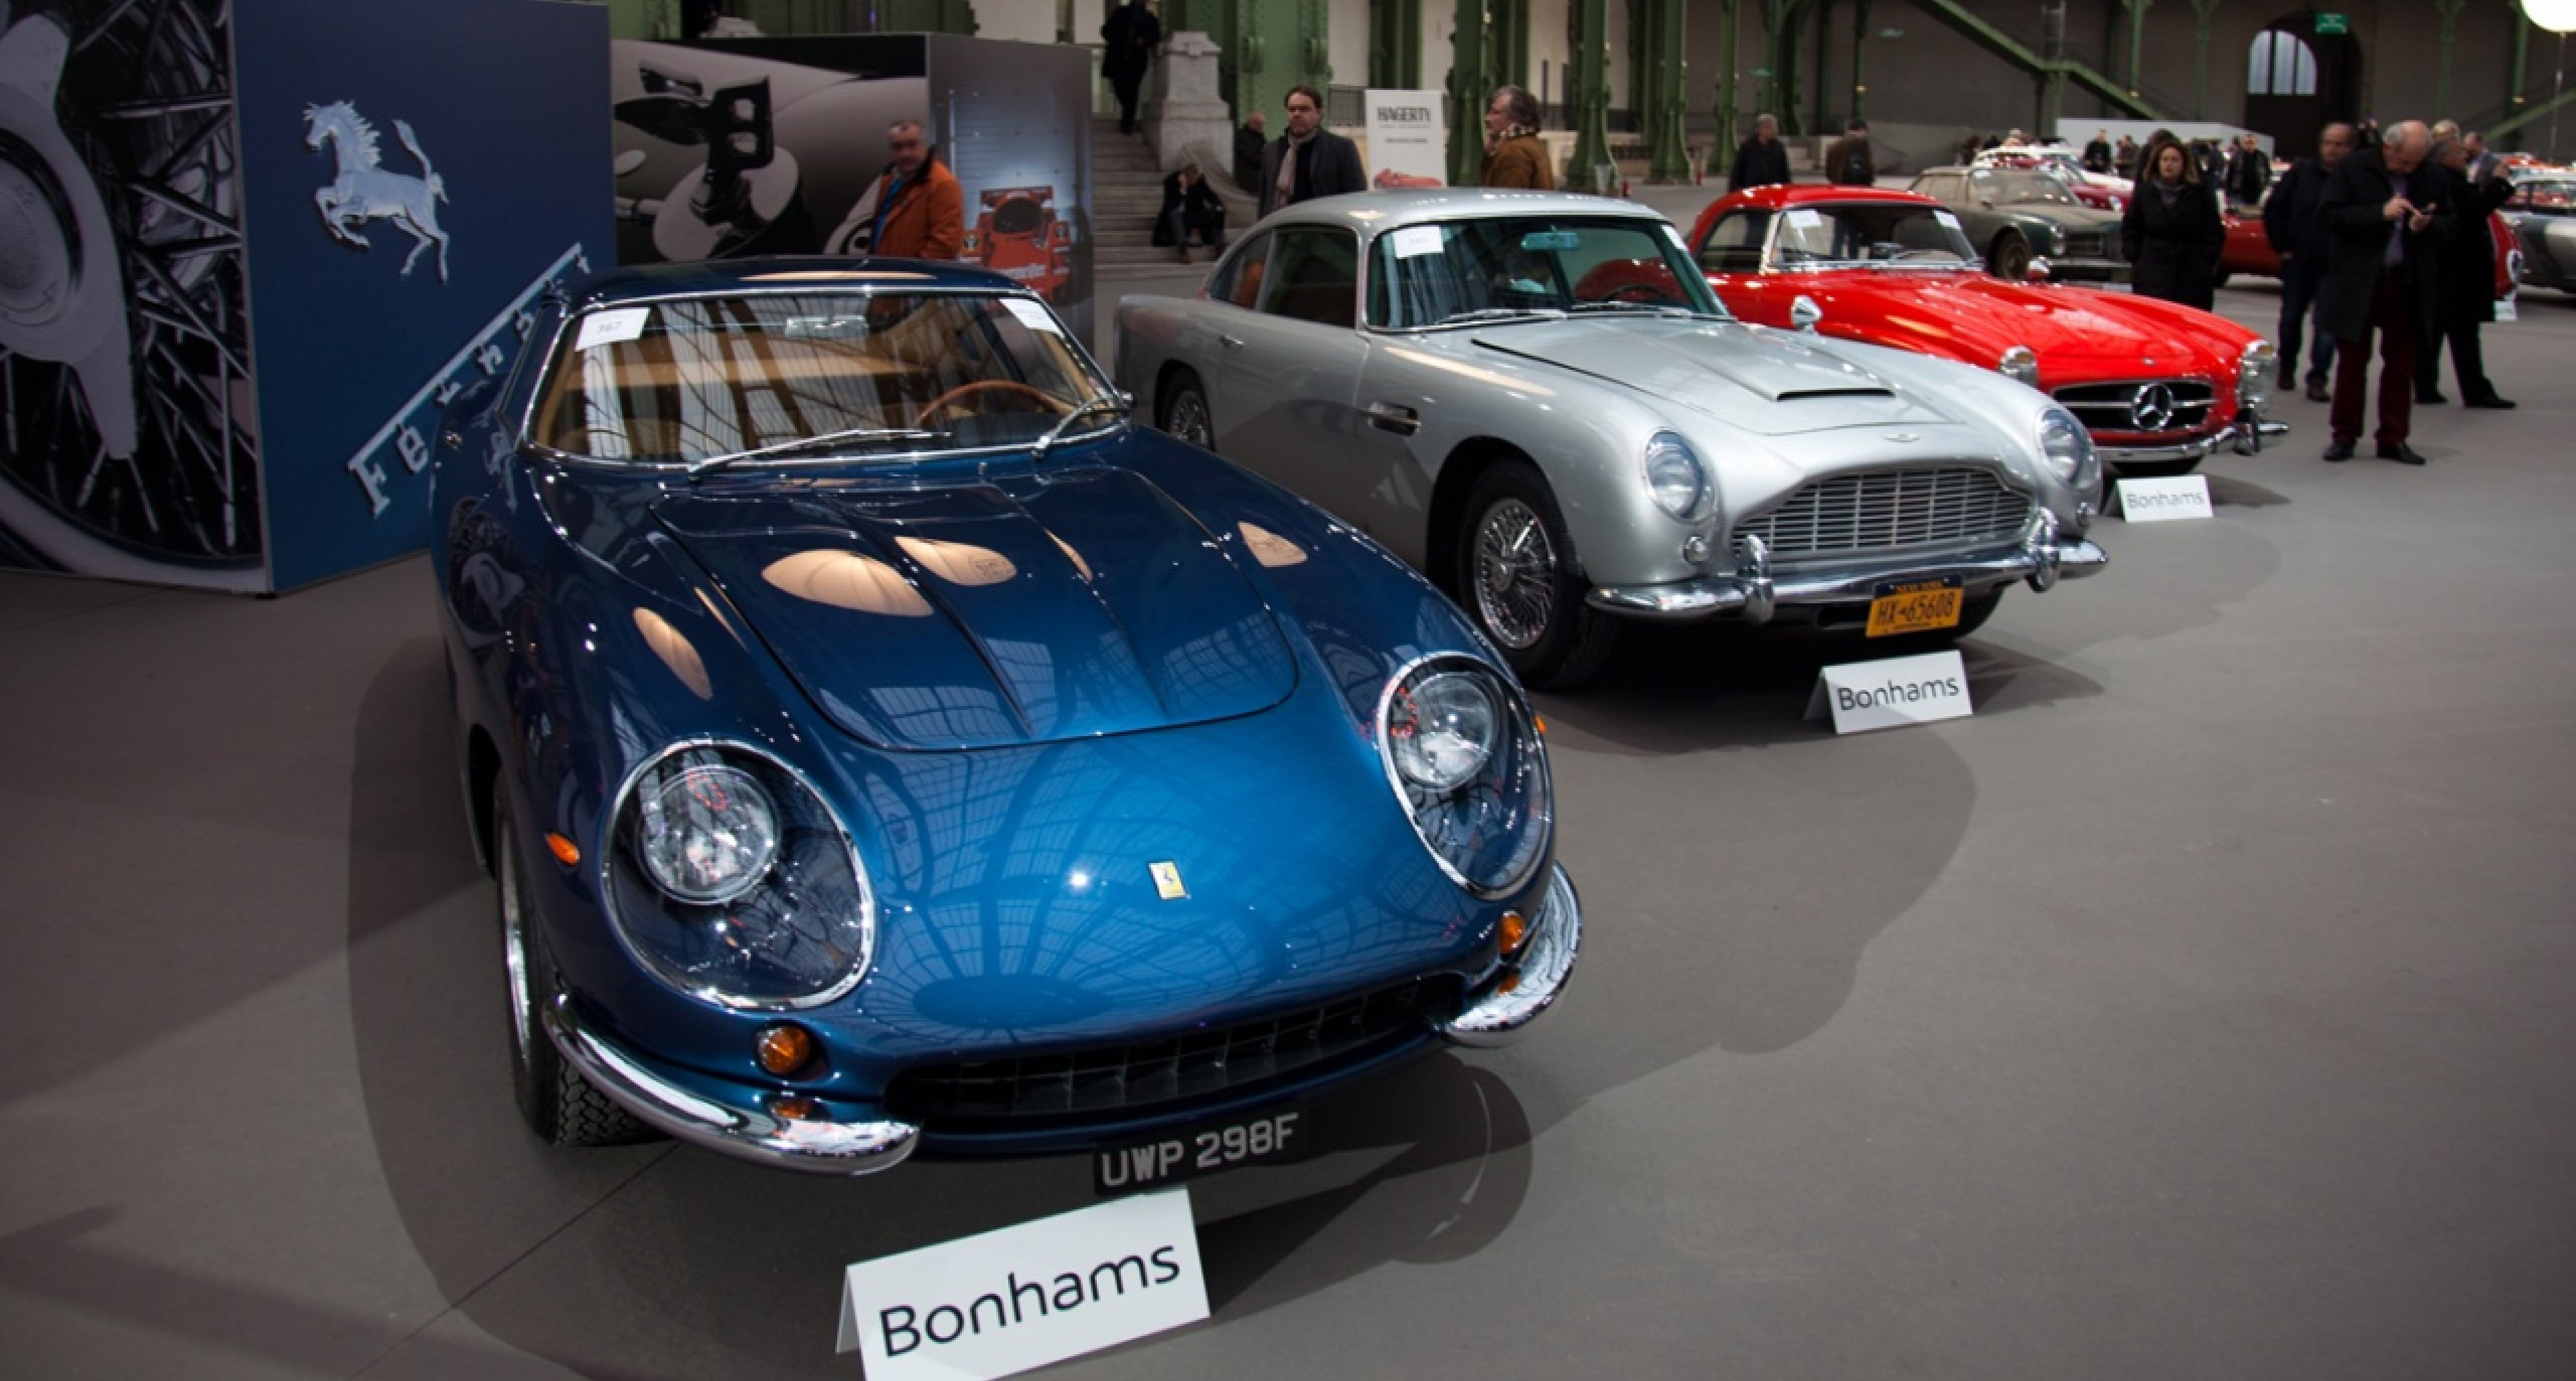 Million dollar beauties at Bonhams' Retromobile sale 2014 at Grand Palais, Paris: Ferrari 275GTB/4 (sold for €2,218,333), Aston Martin DB5 (sold for €776,250) and Mercedes 300SL Roadster (sold for €713,000).